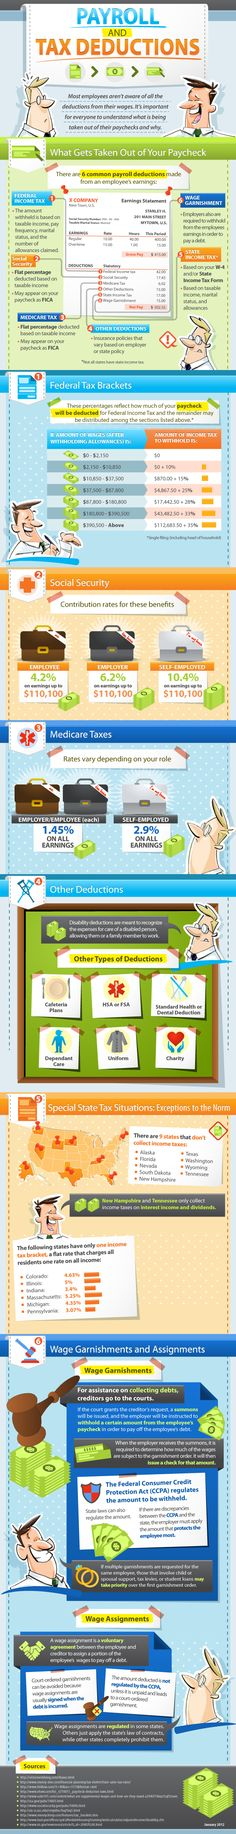 Great infographic on payroll & tax deductions from Paycor